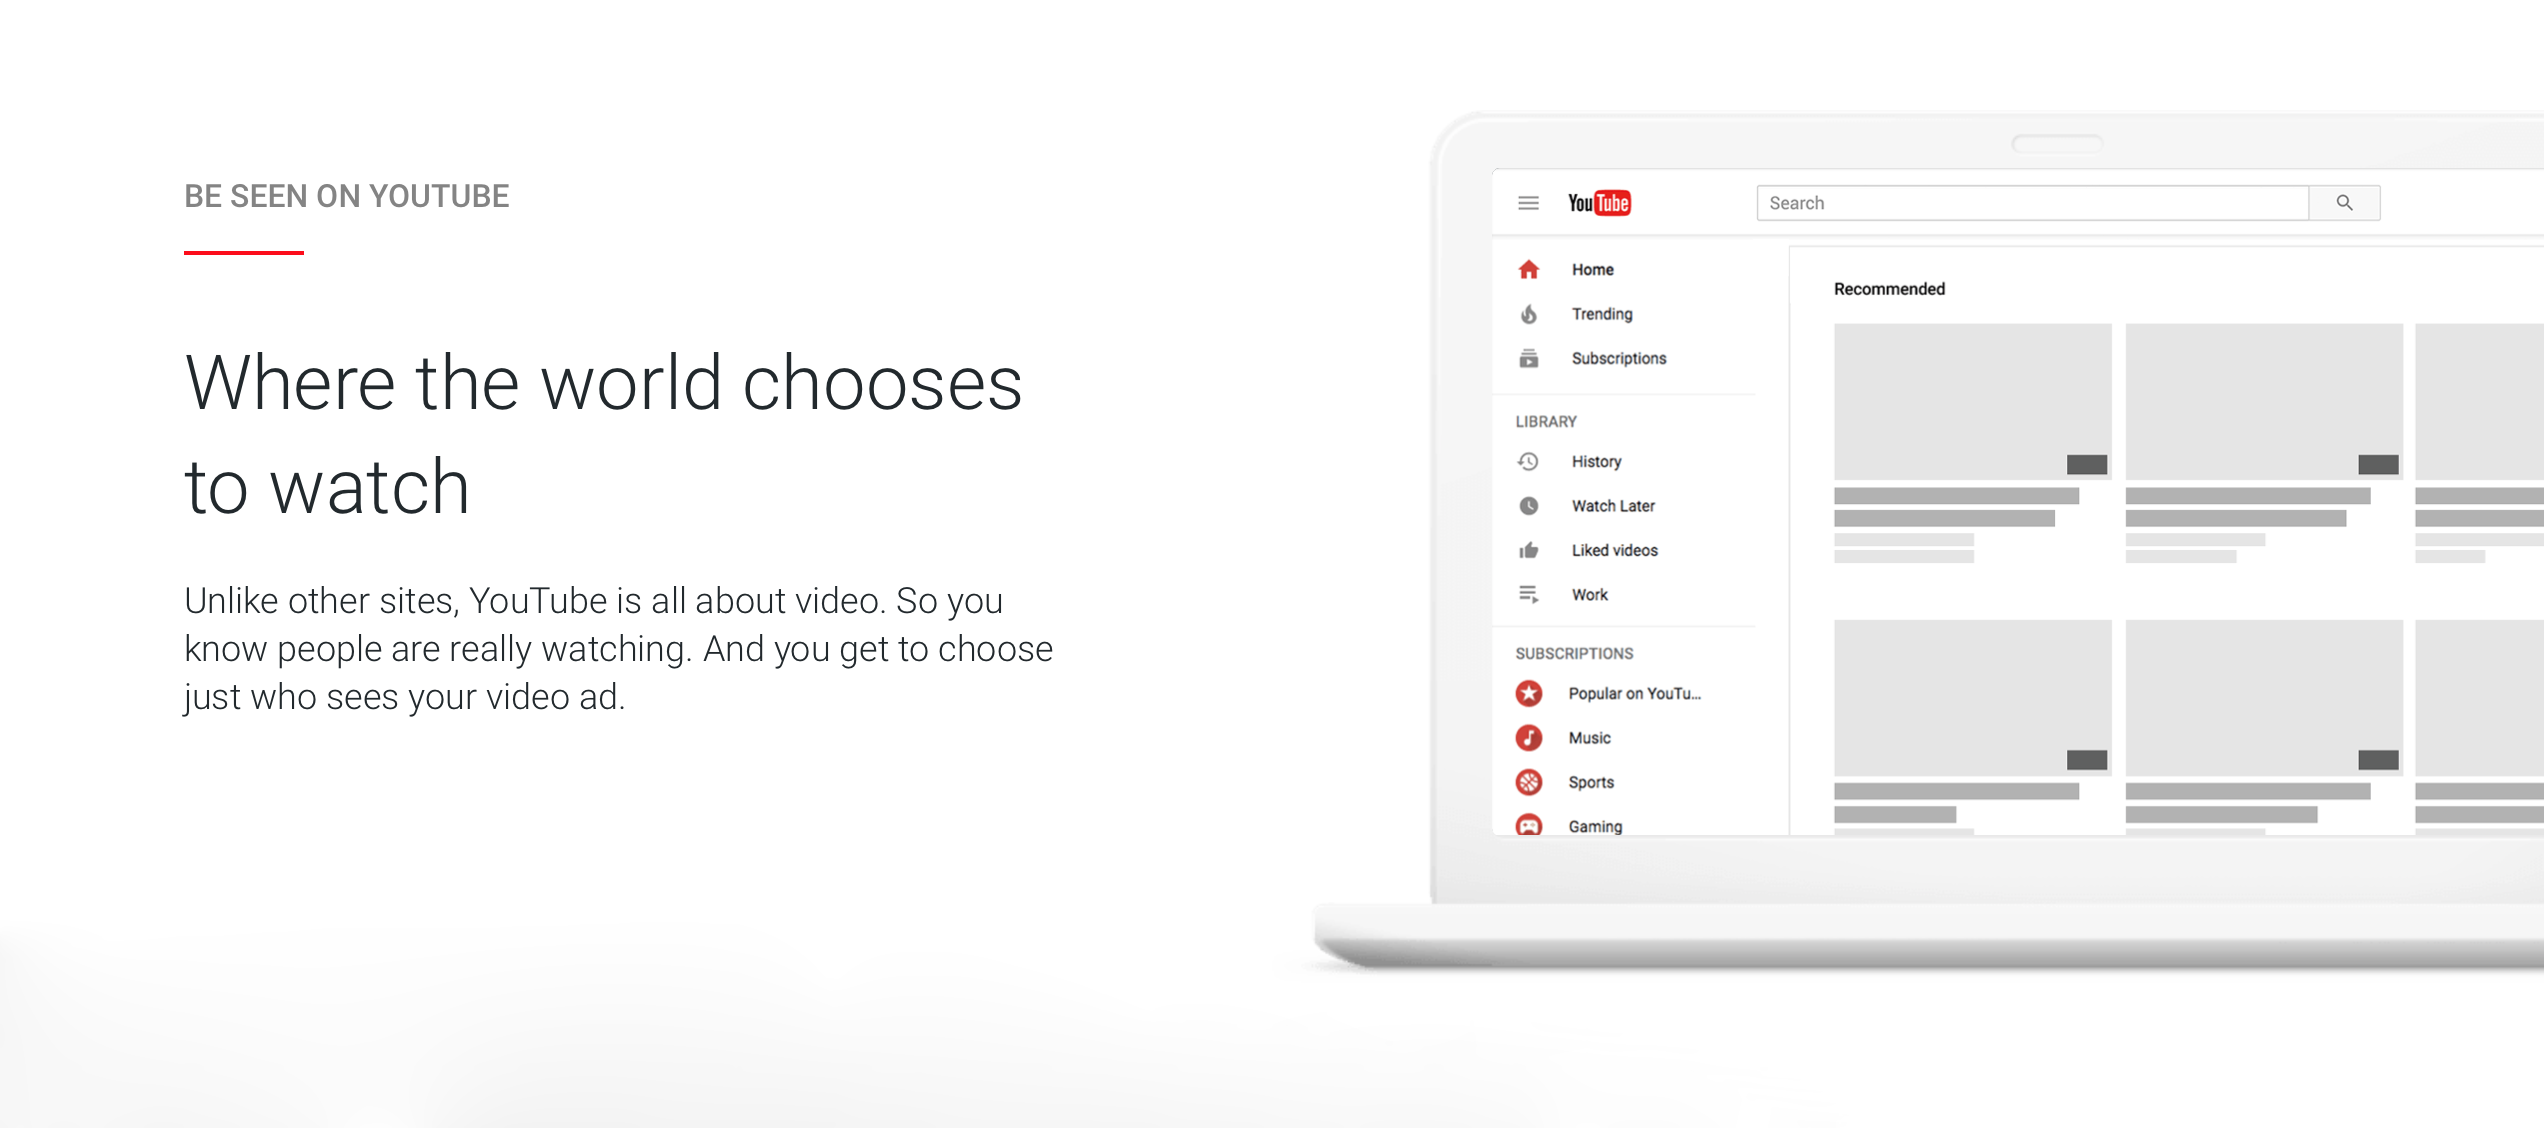 Learn more about Youtube's Advertising Opportunities